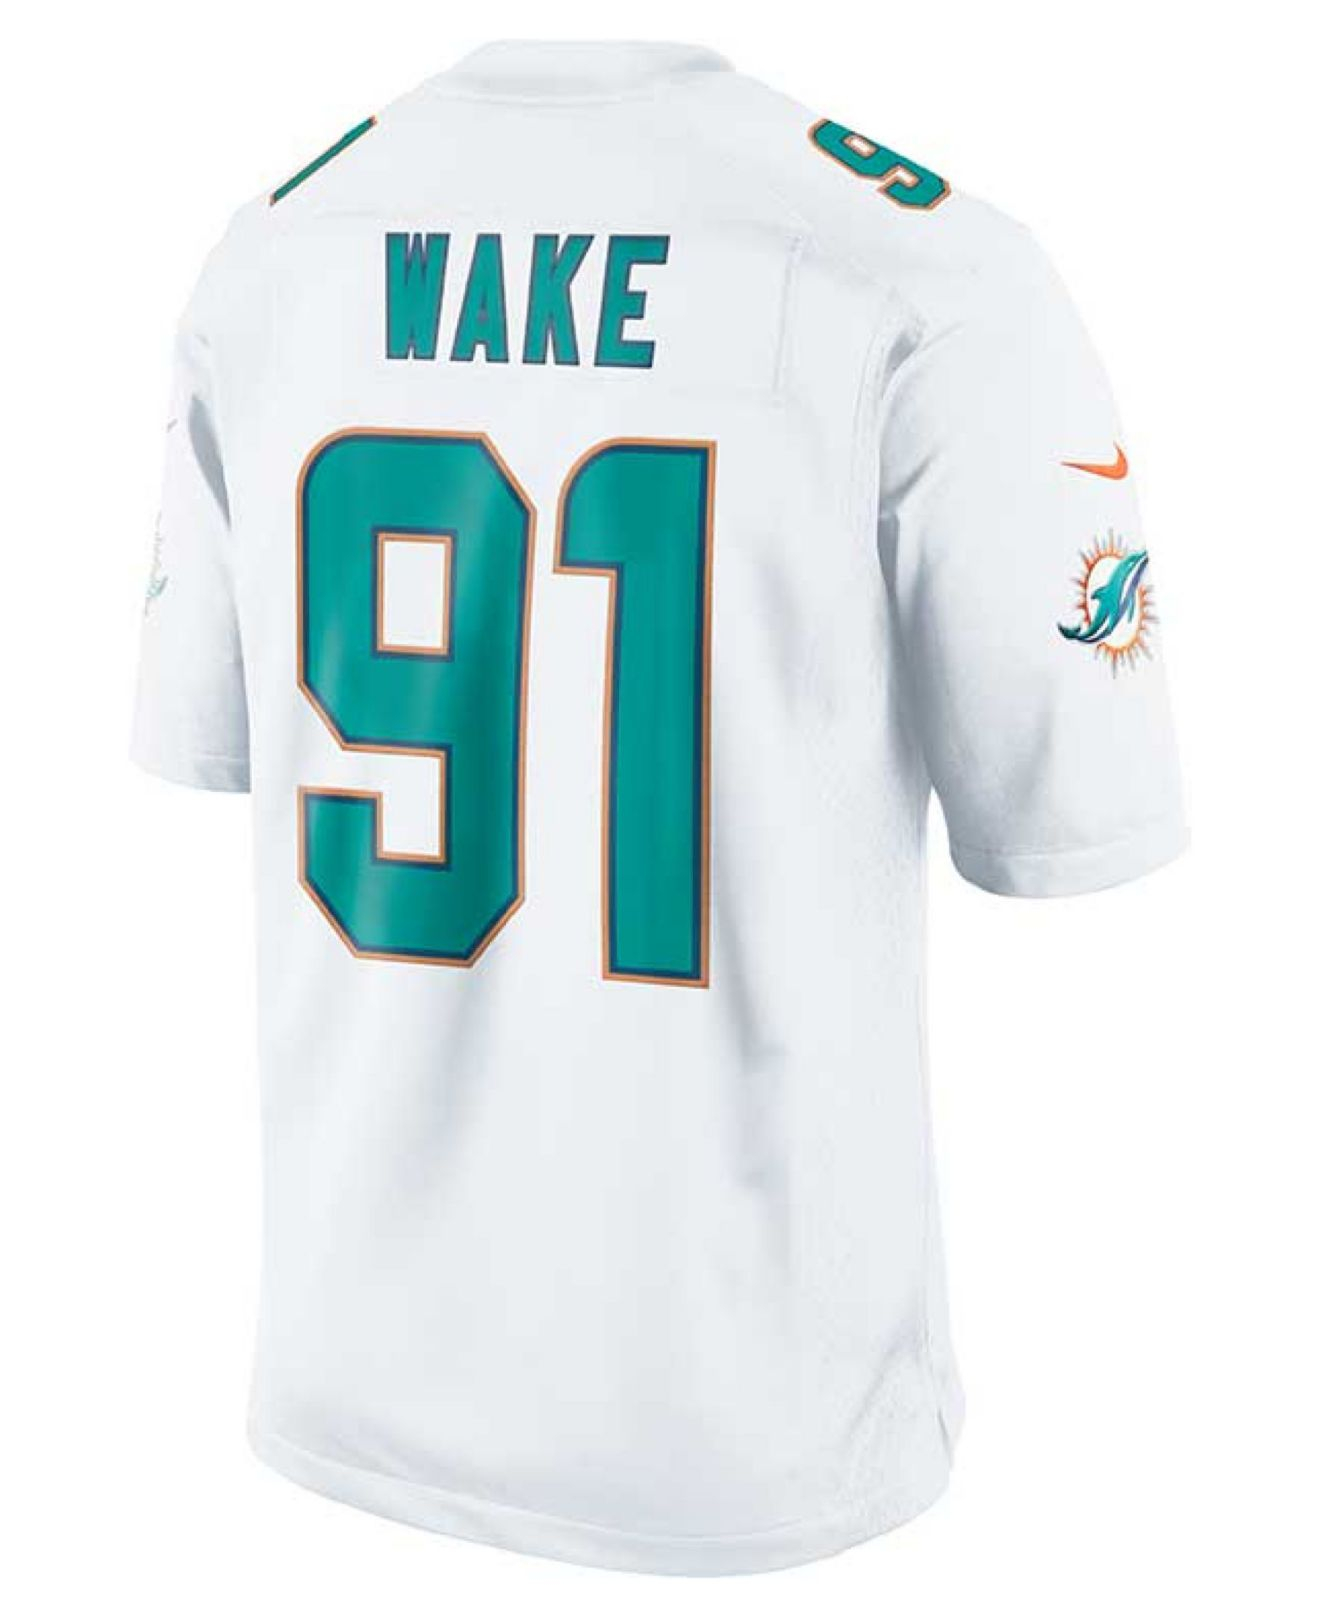 nike-white-mens-cameron-wake-miami-dolphins-limited-jersey-product-1-823595975-normal.jpeg